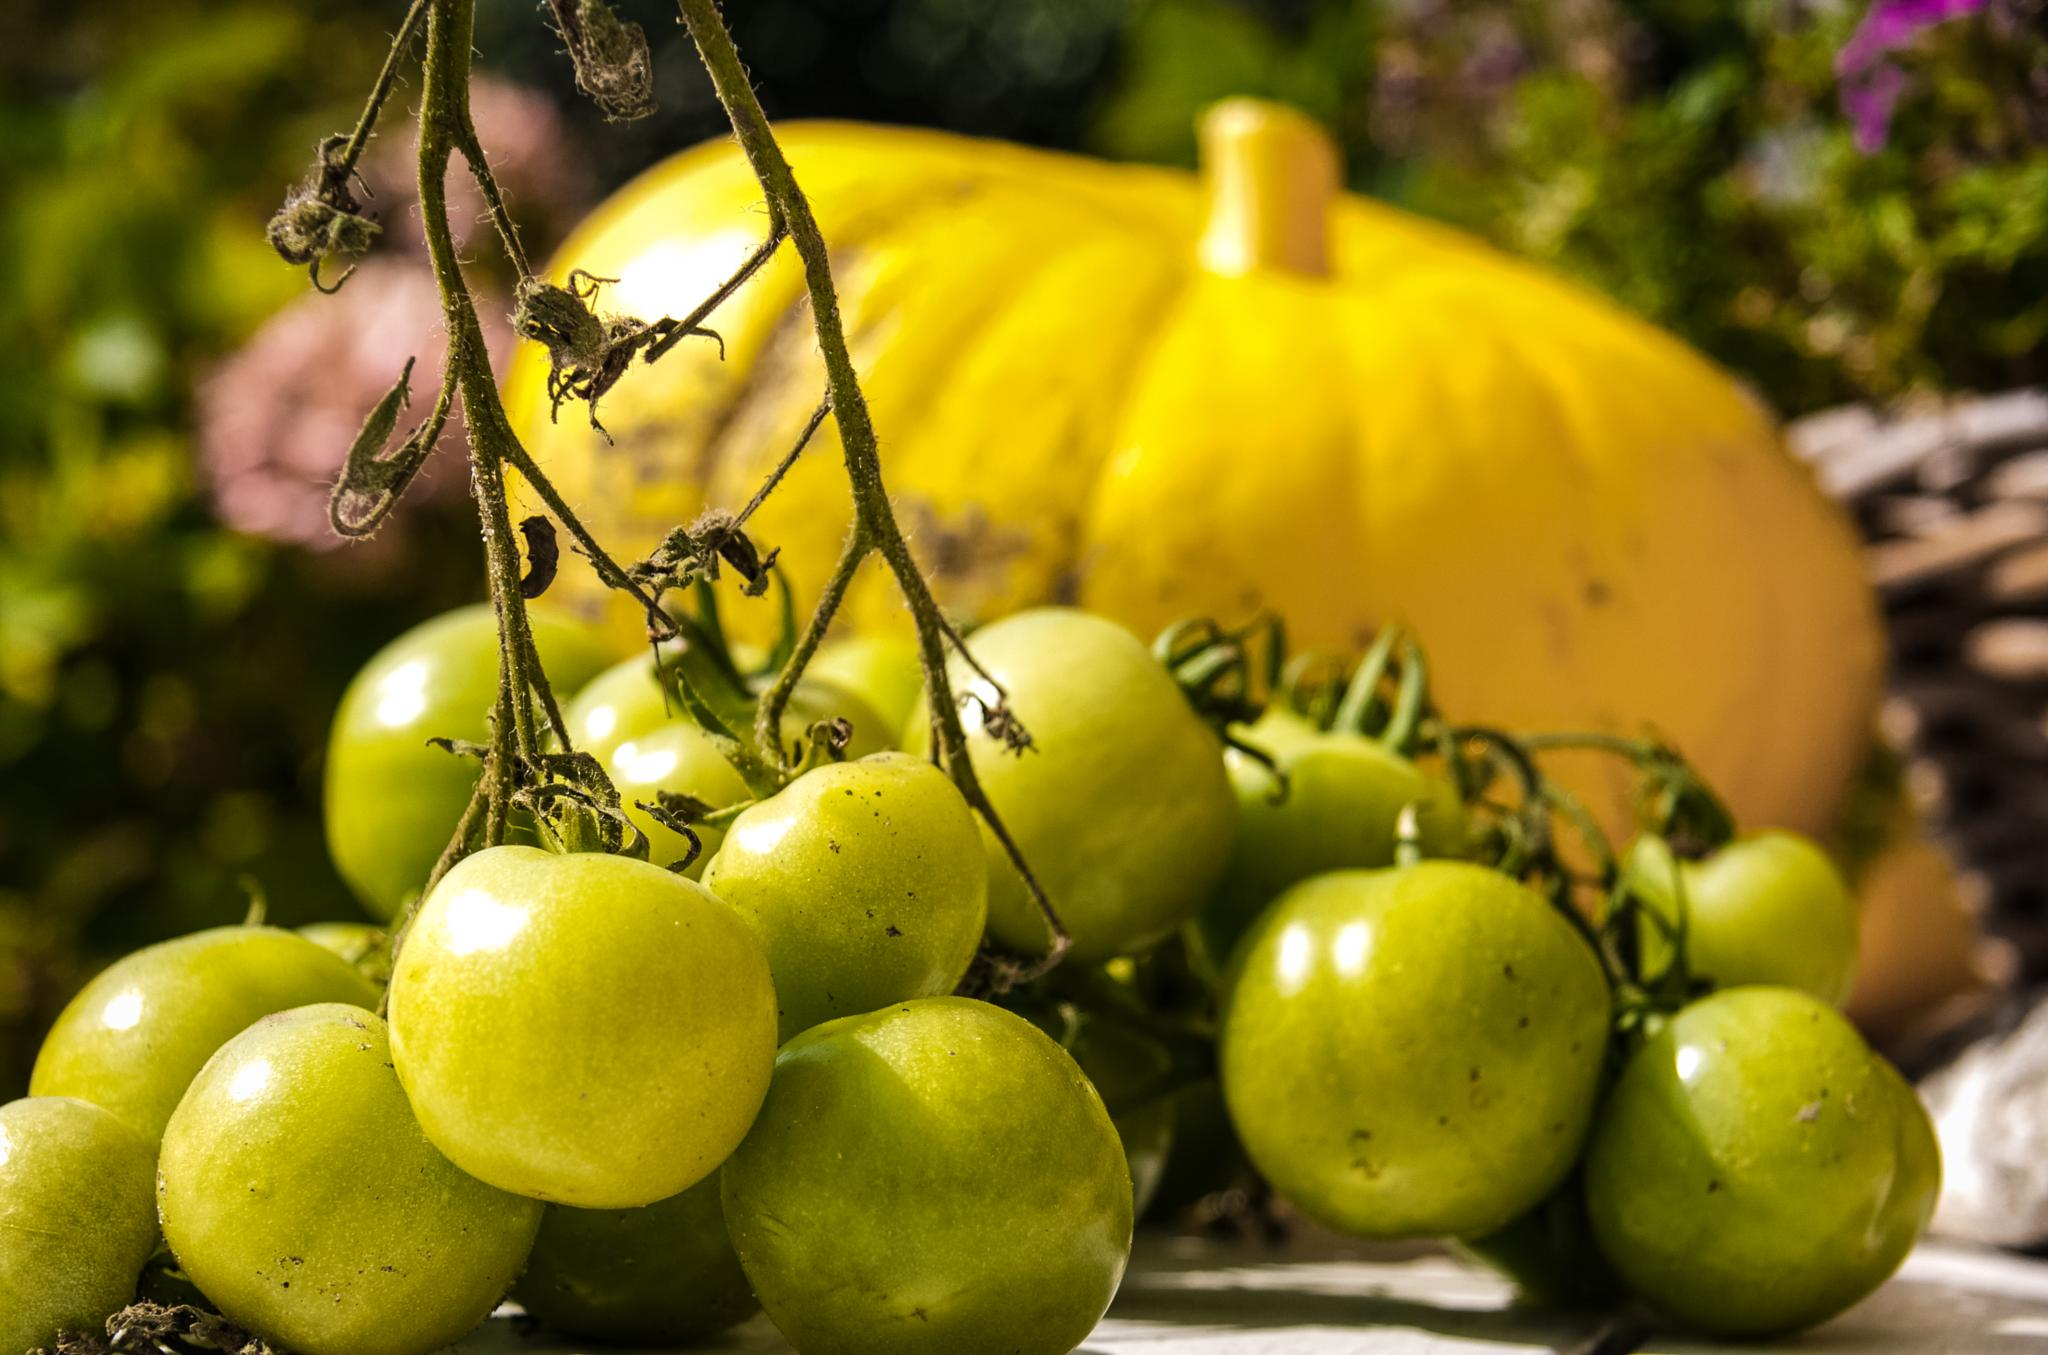 Green tomatoes by Vogala